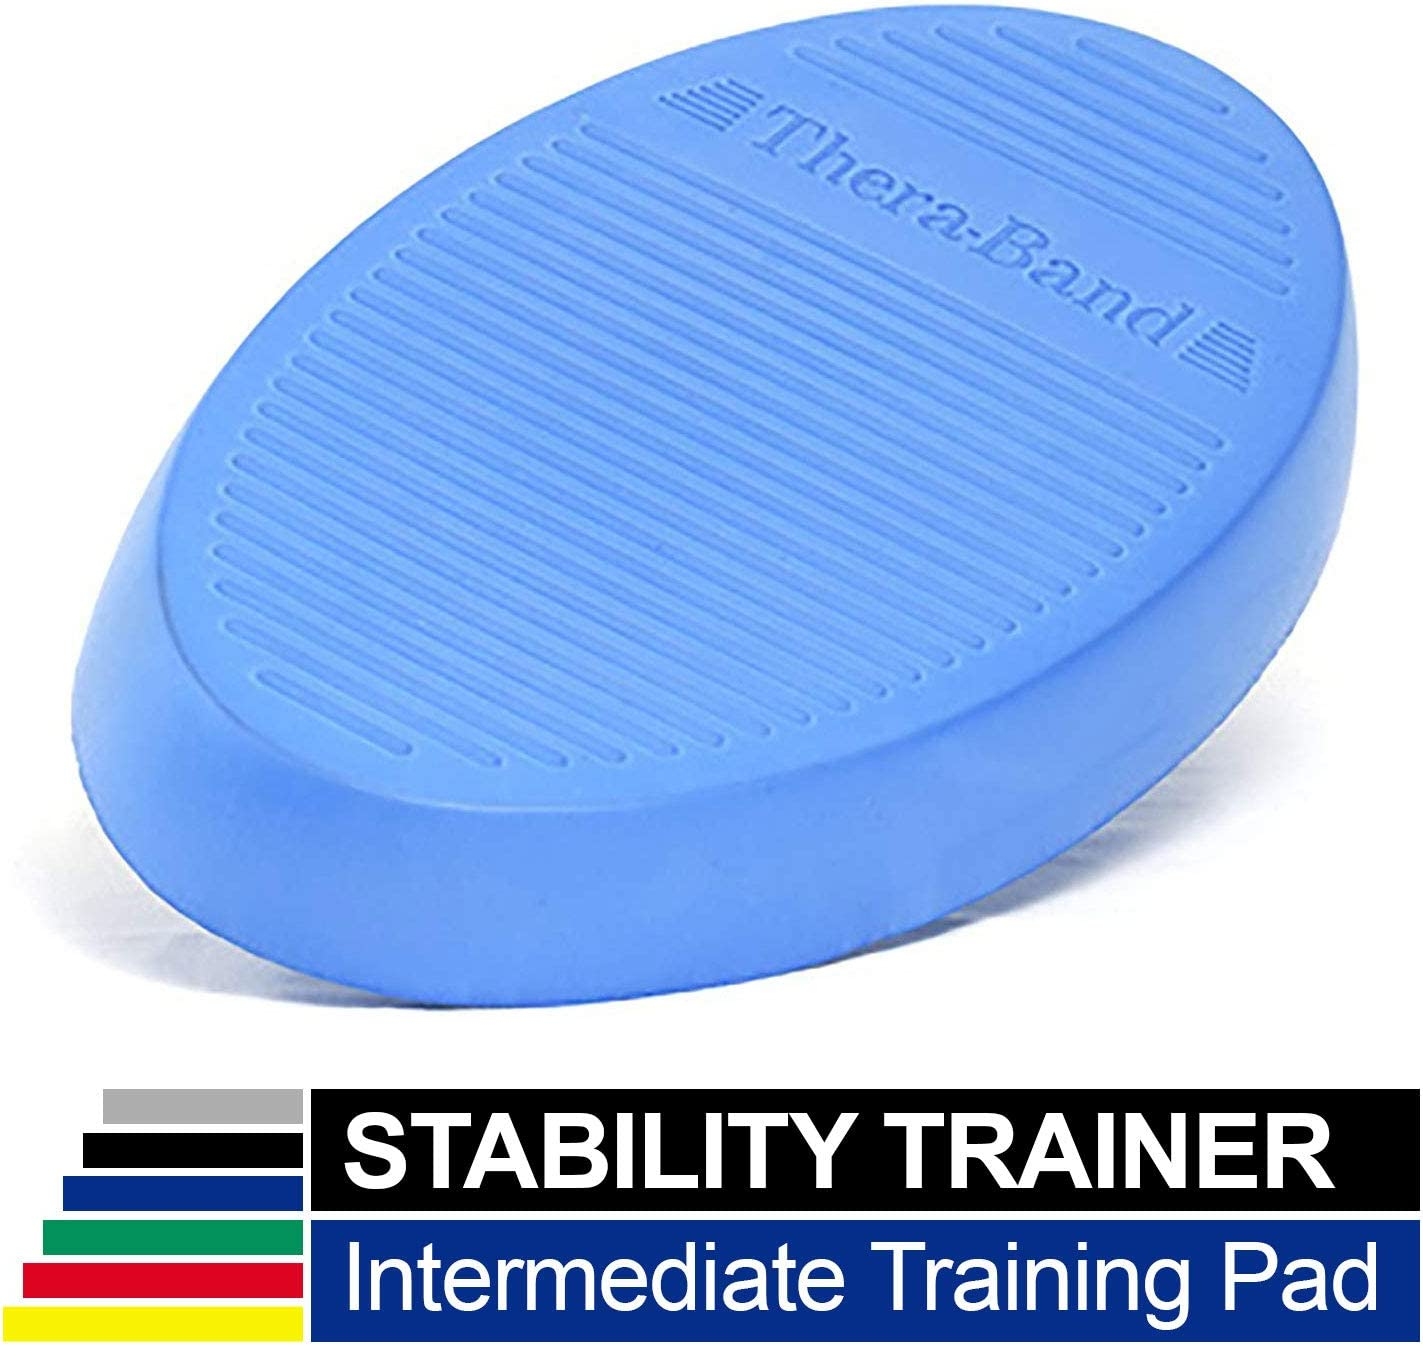 TheraBand Stability Trainer Pad, Beginner Level Green Foam Pad, Balance Trainer Wobble Cushion for Balance Core Strengthening, Rehabilitation, Physical Therapy, Round Sport Balance Trainer